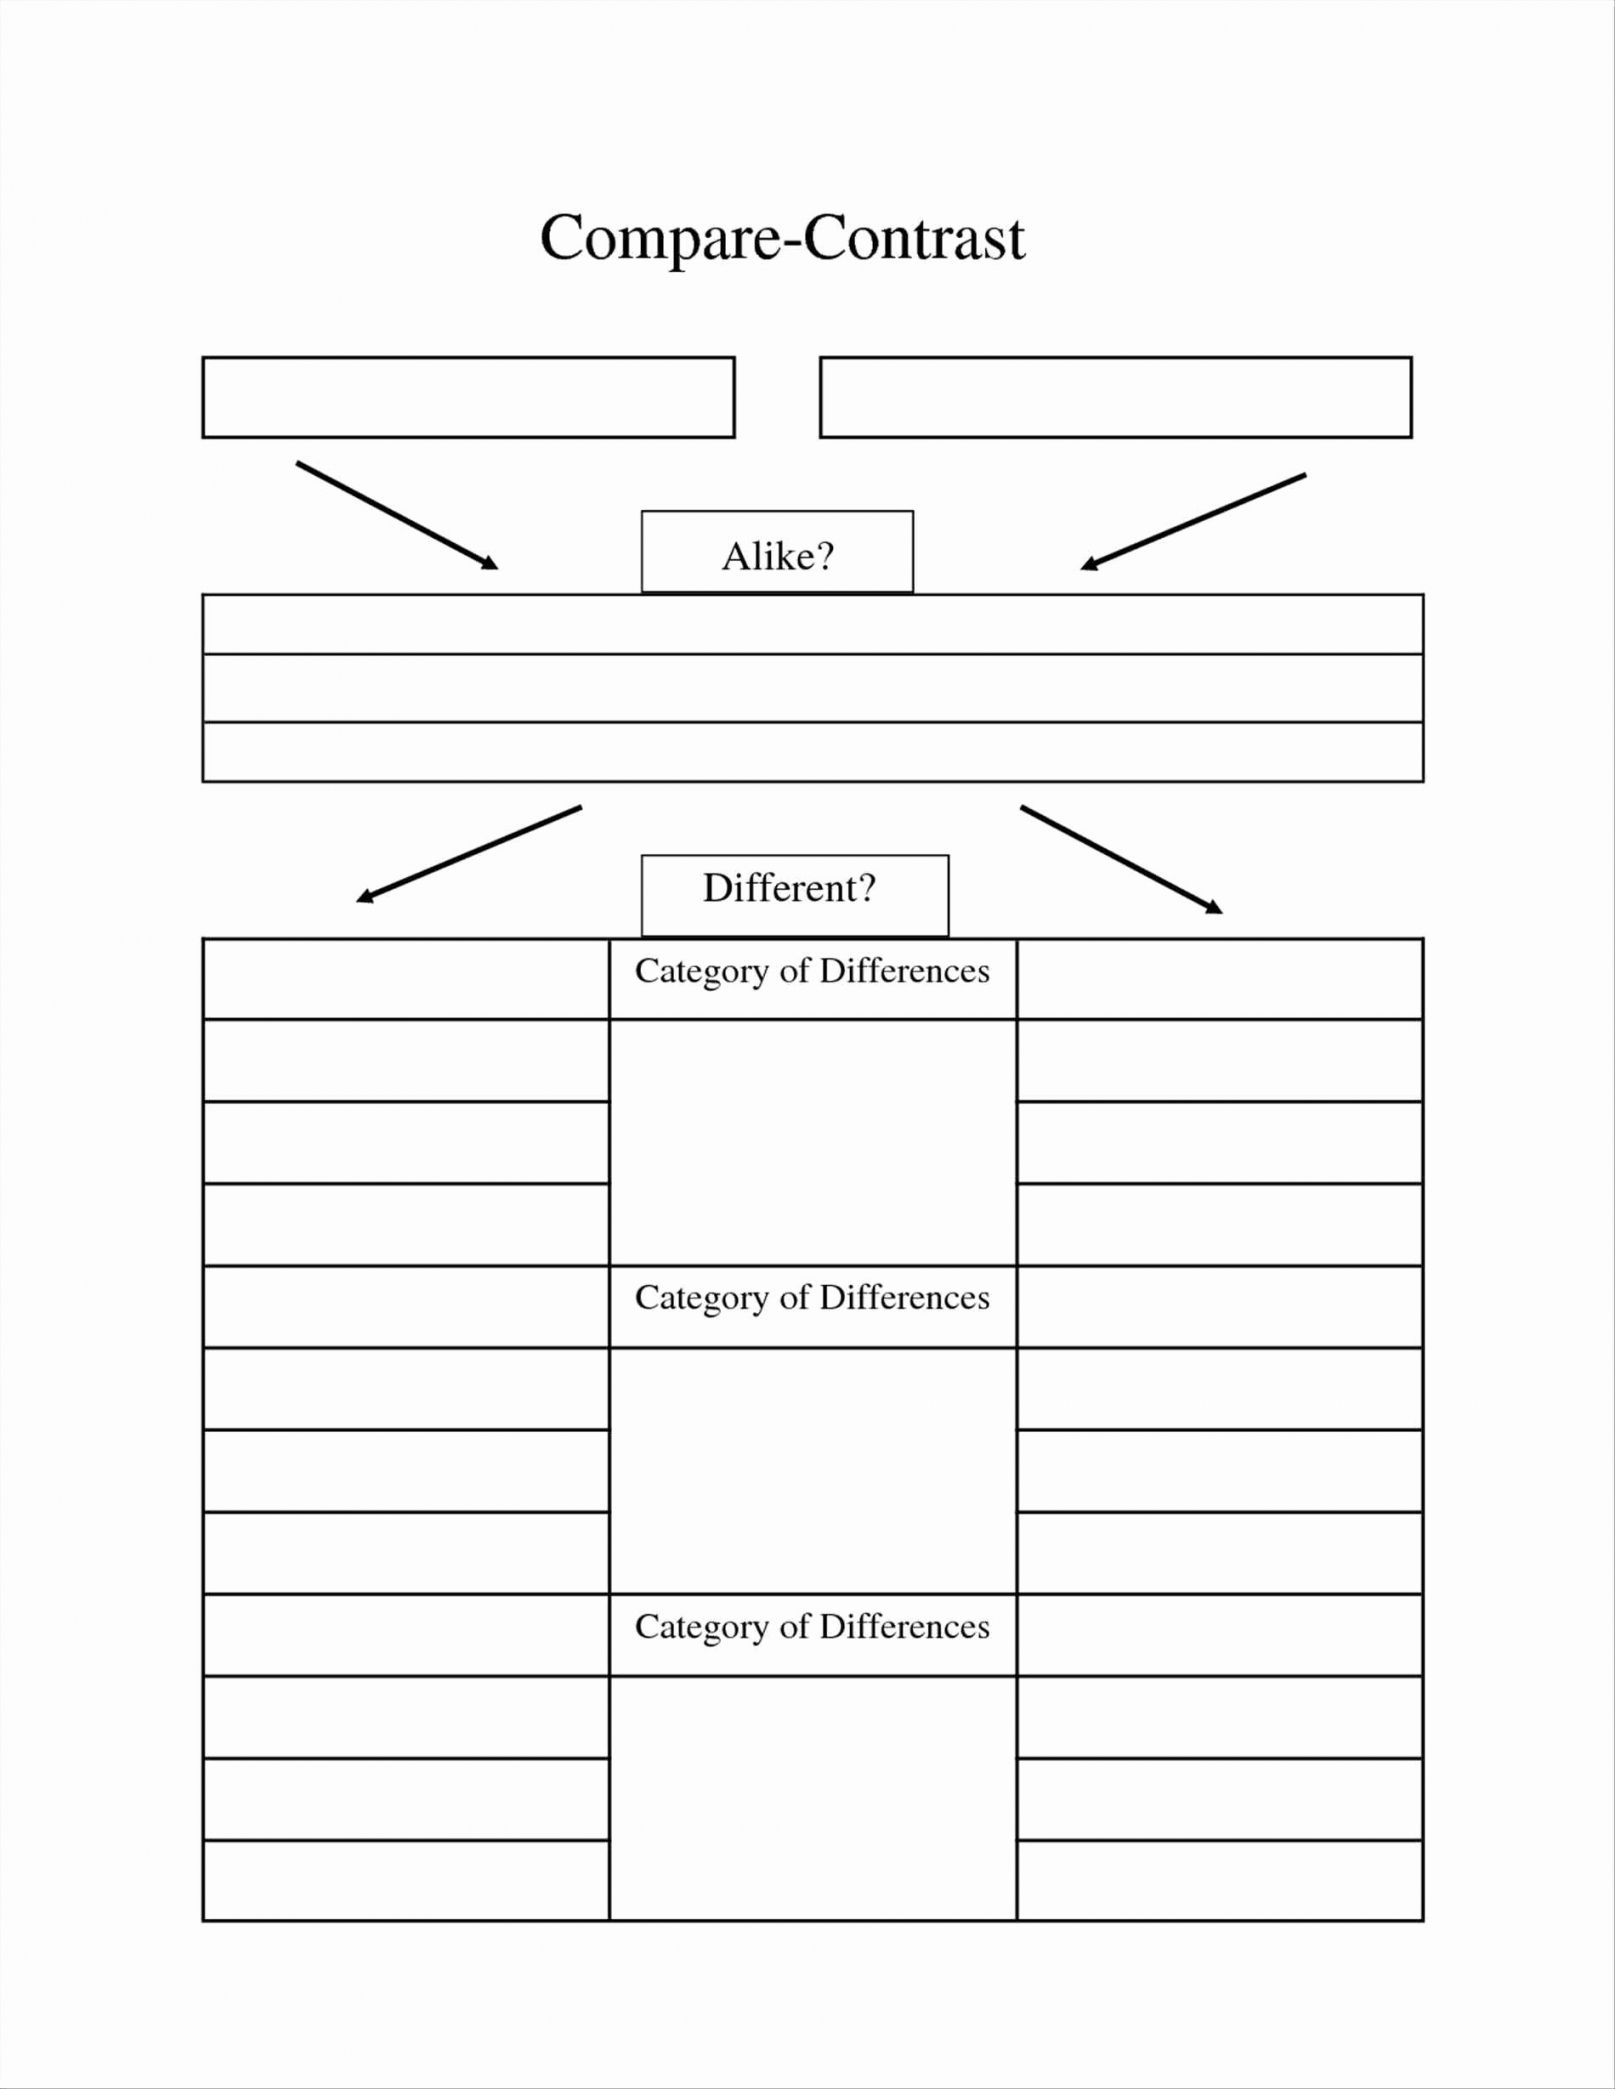 Monthly Budget Worksheet Template  Blank Templates  Compare  Monthly Budget Worksheet Template